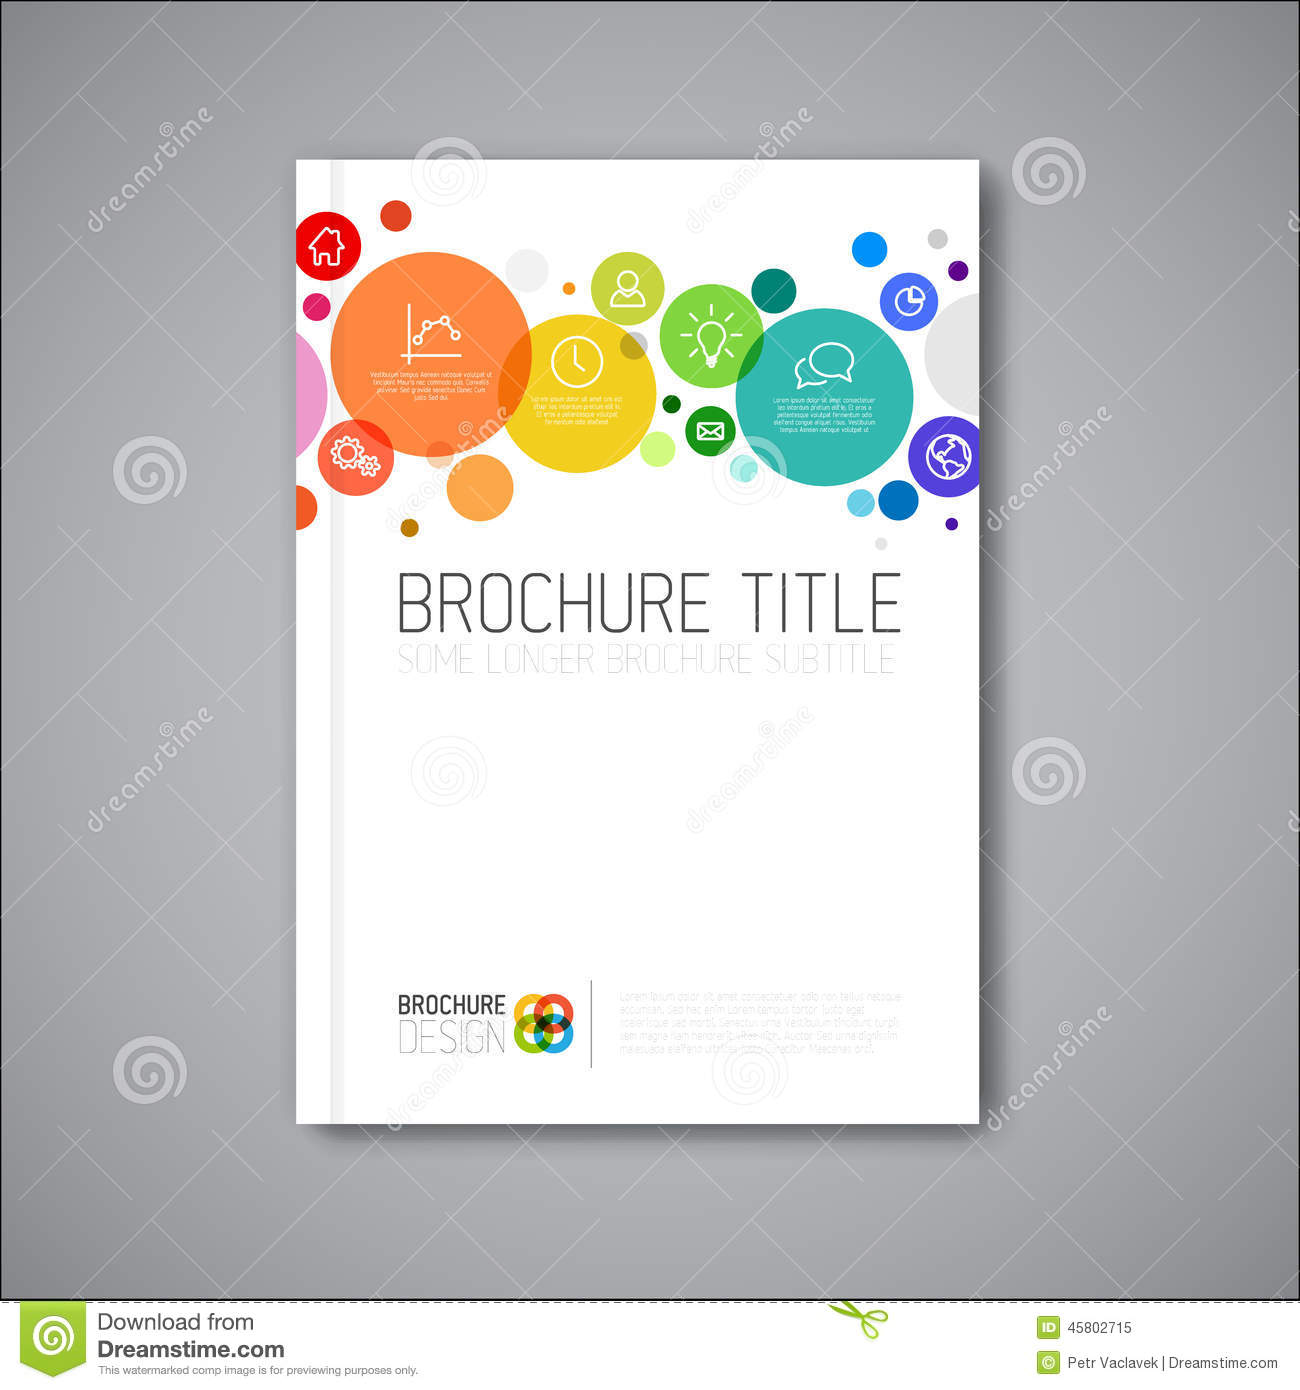 Modern vector abstract brochure design template stock for Modern brochure design templates